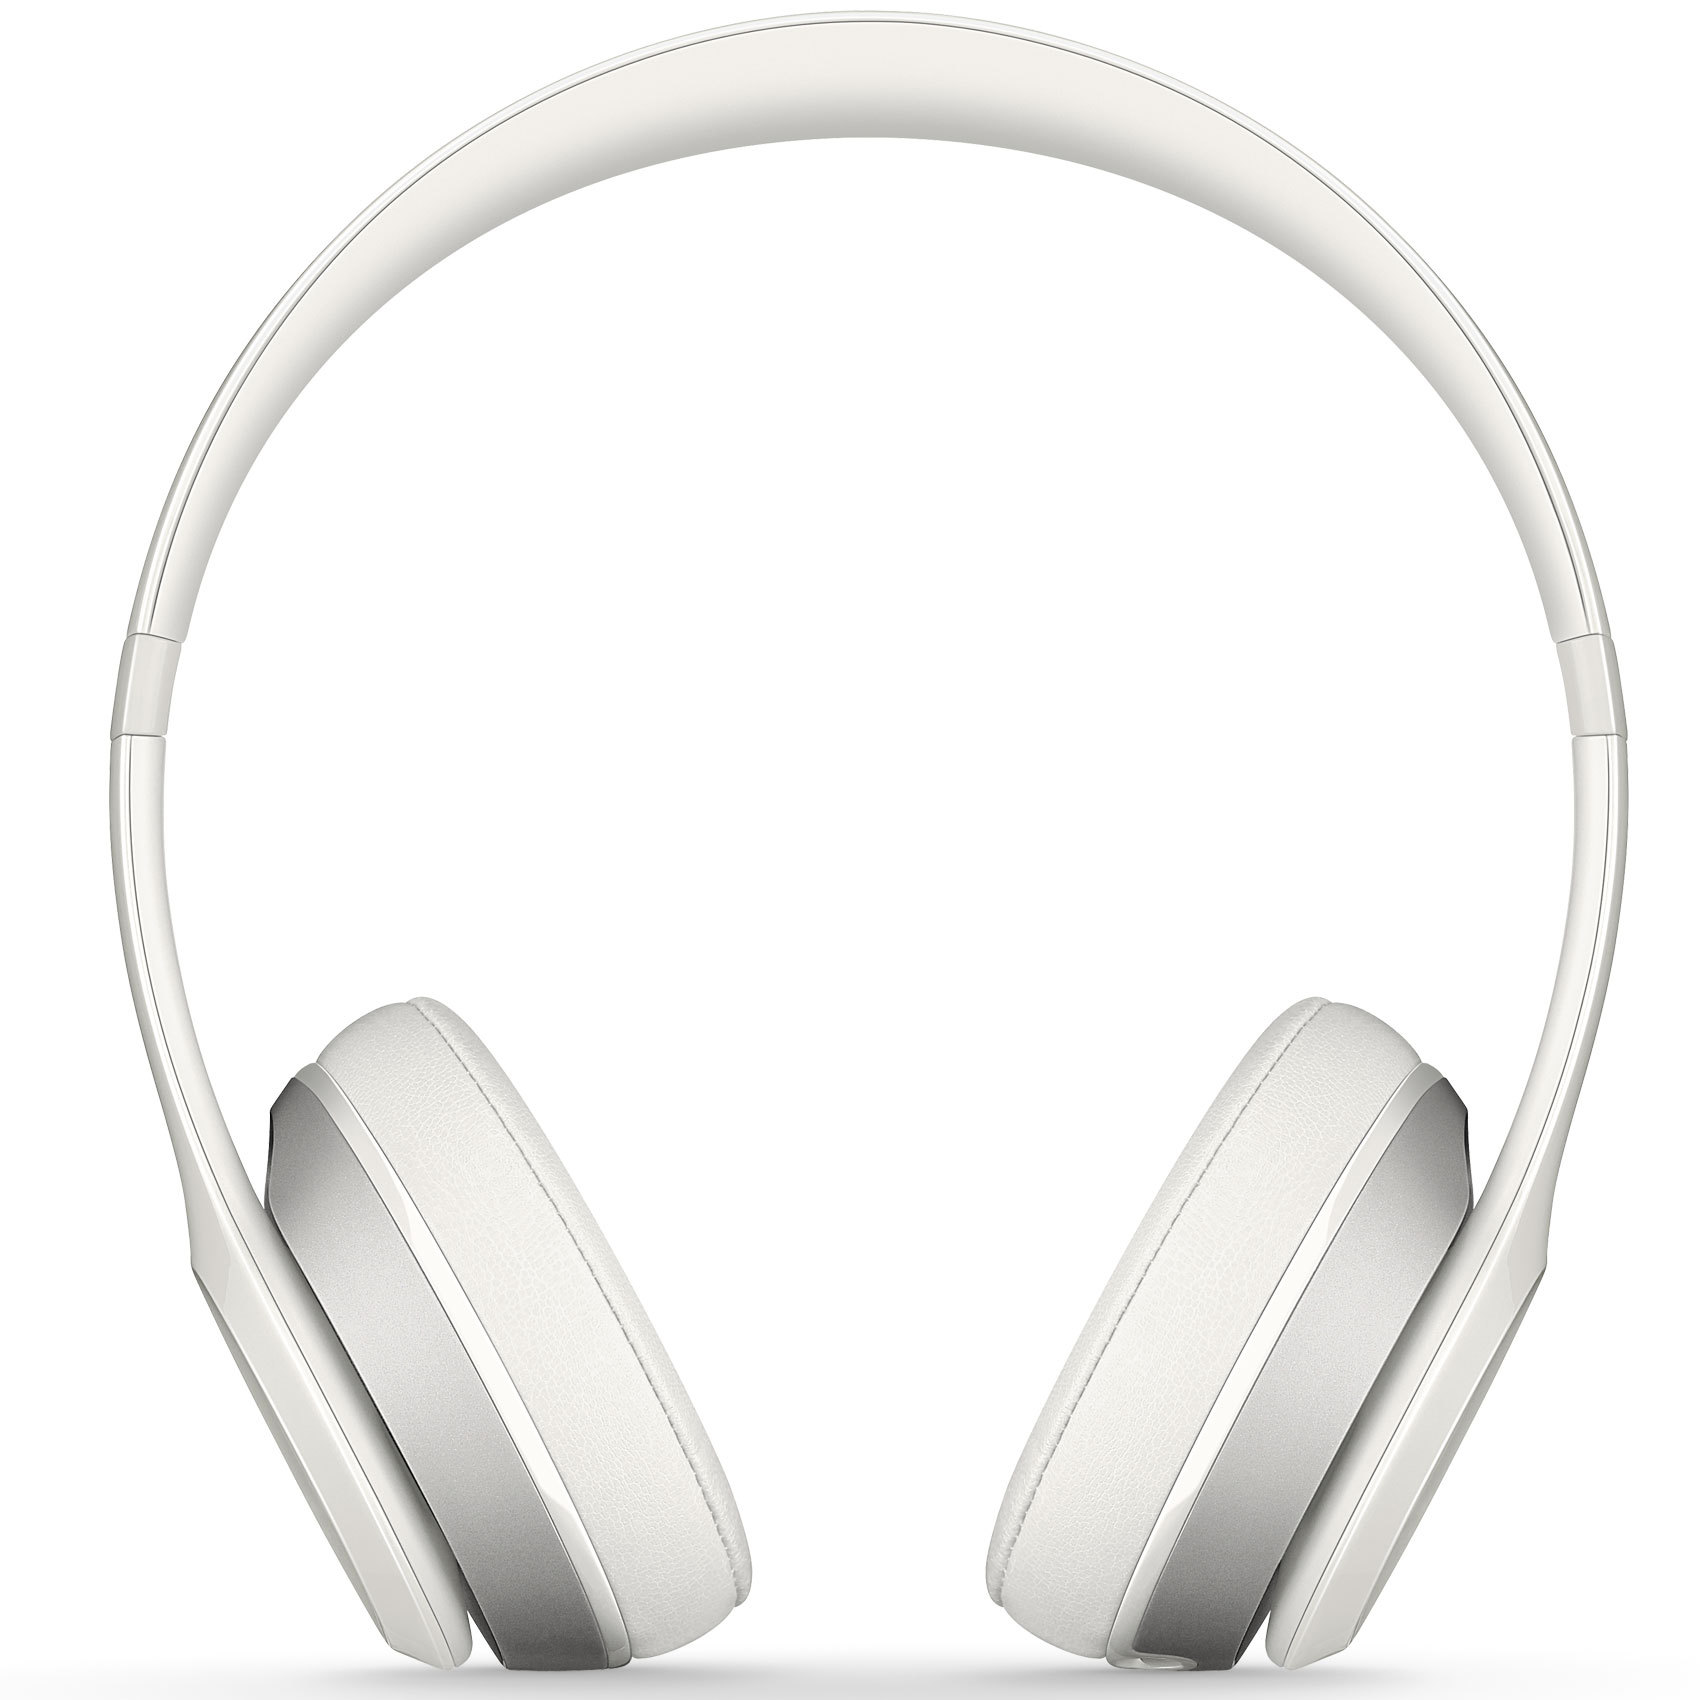 Buy Beats Headphone Solo 2 Wired White Online In Uae Carrefour Hd1 Solo2 Wh